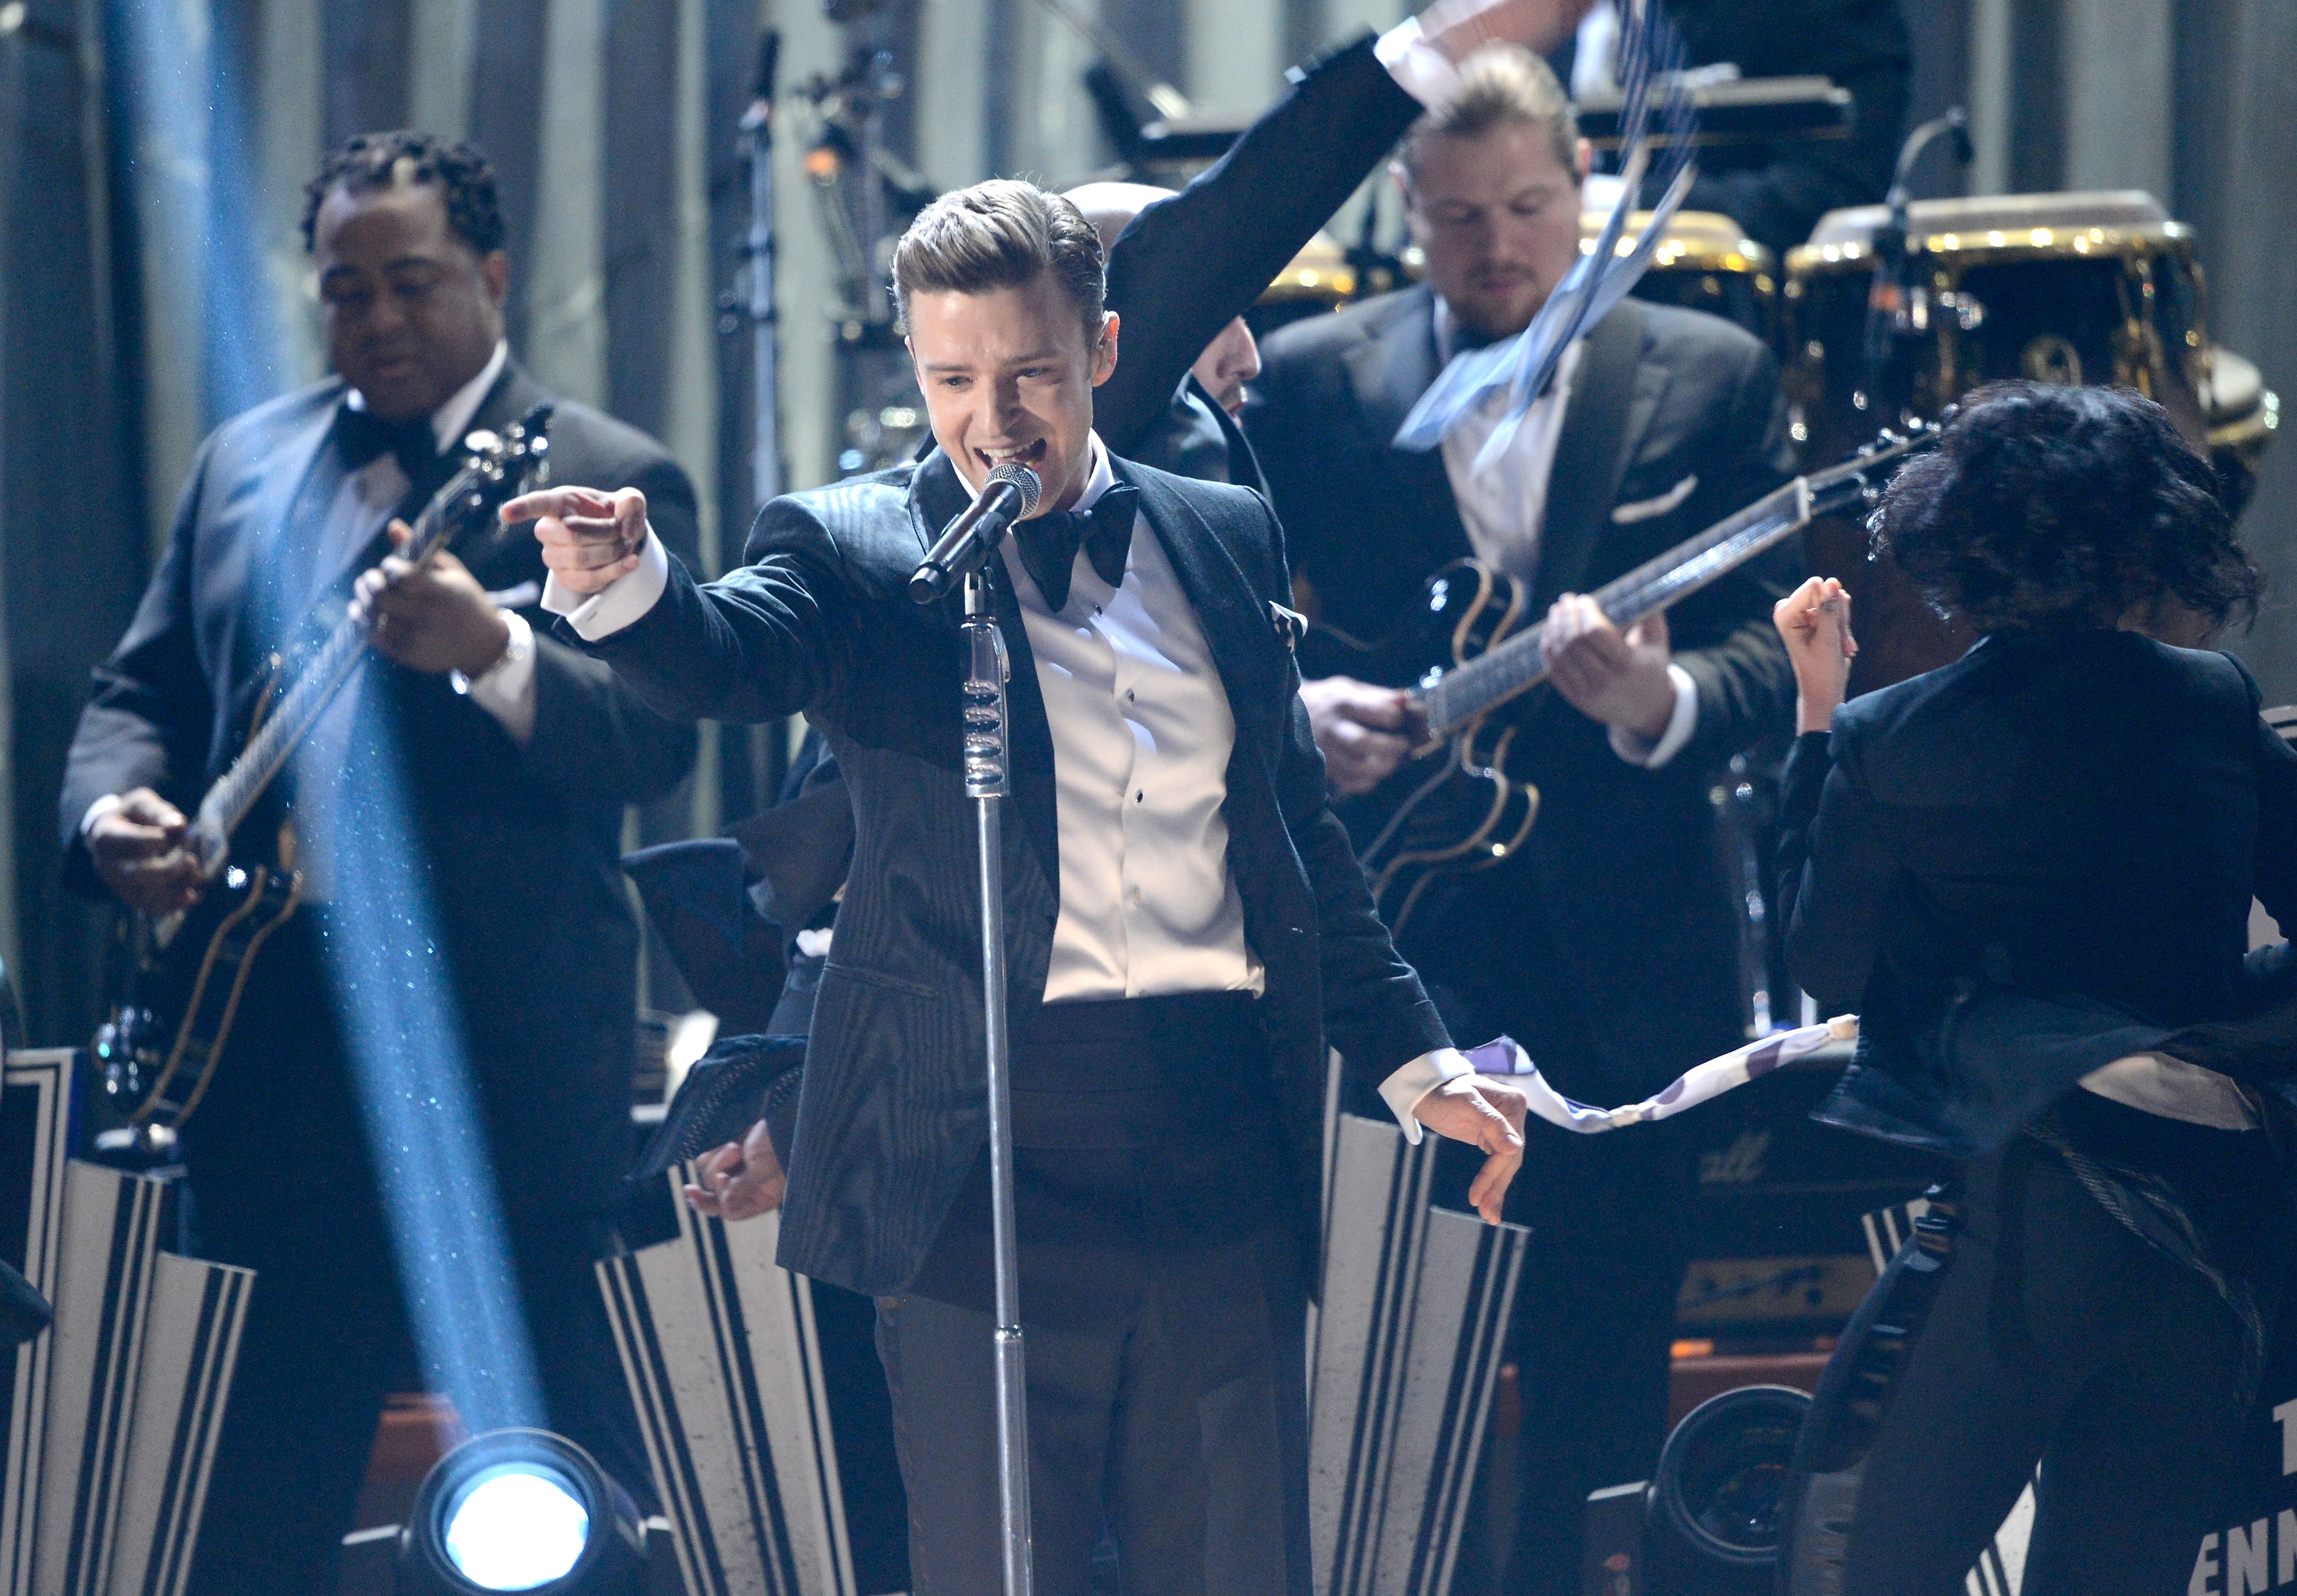 Justin Timberlake belted it out during the show.